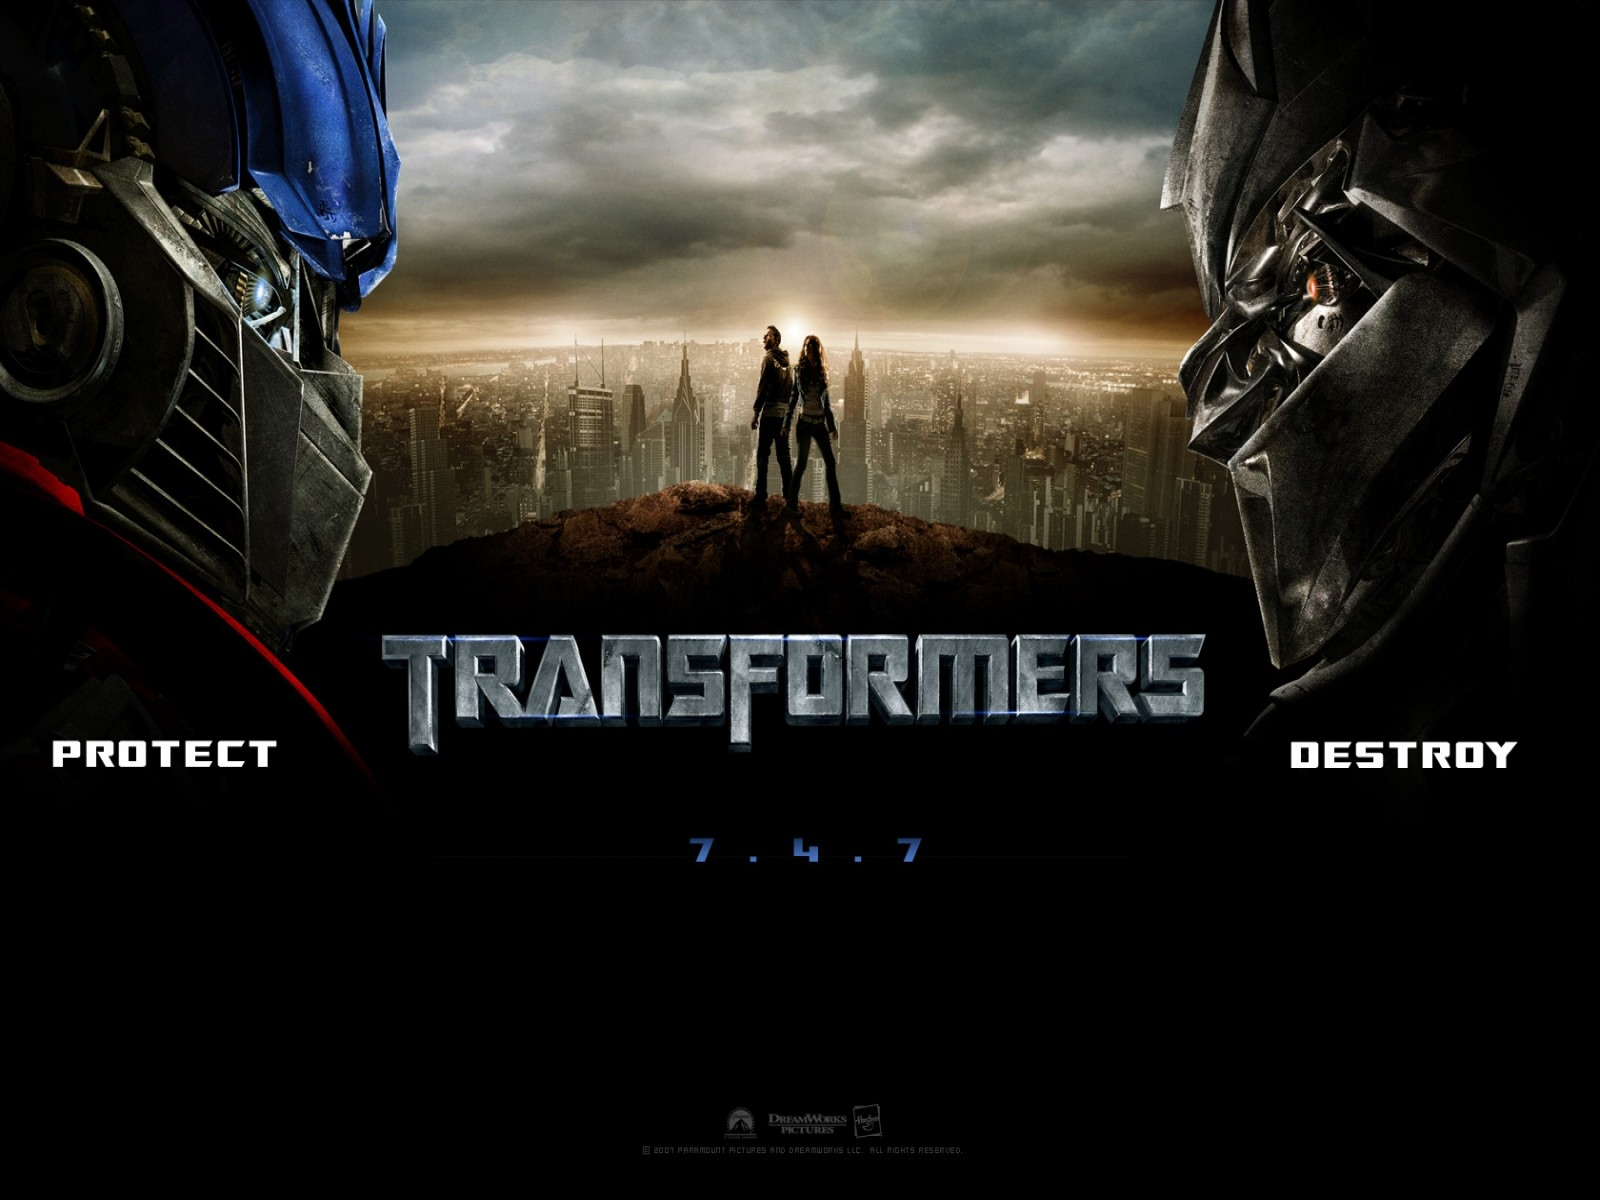 Suggestivo wallpaper del film Transformers